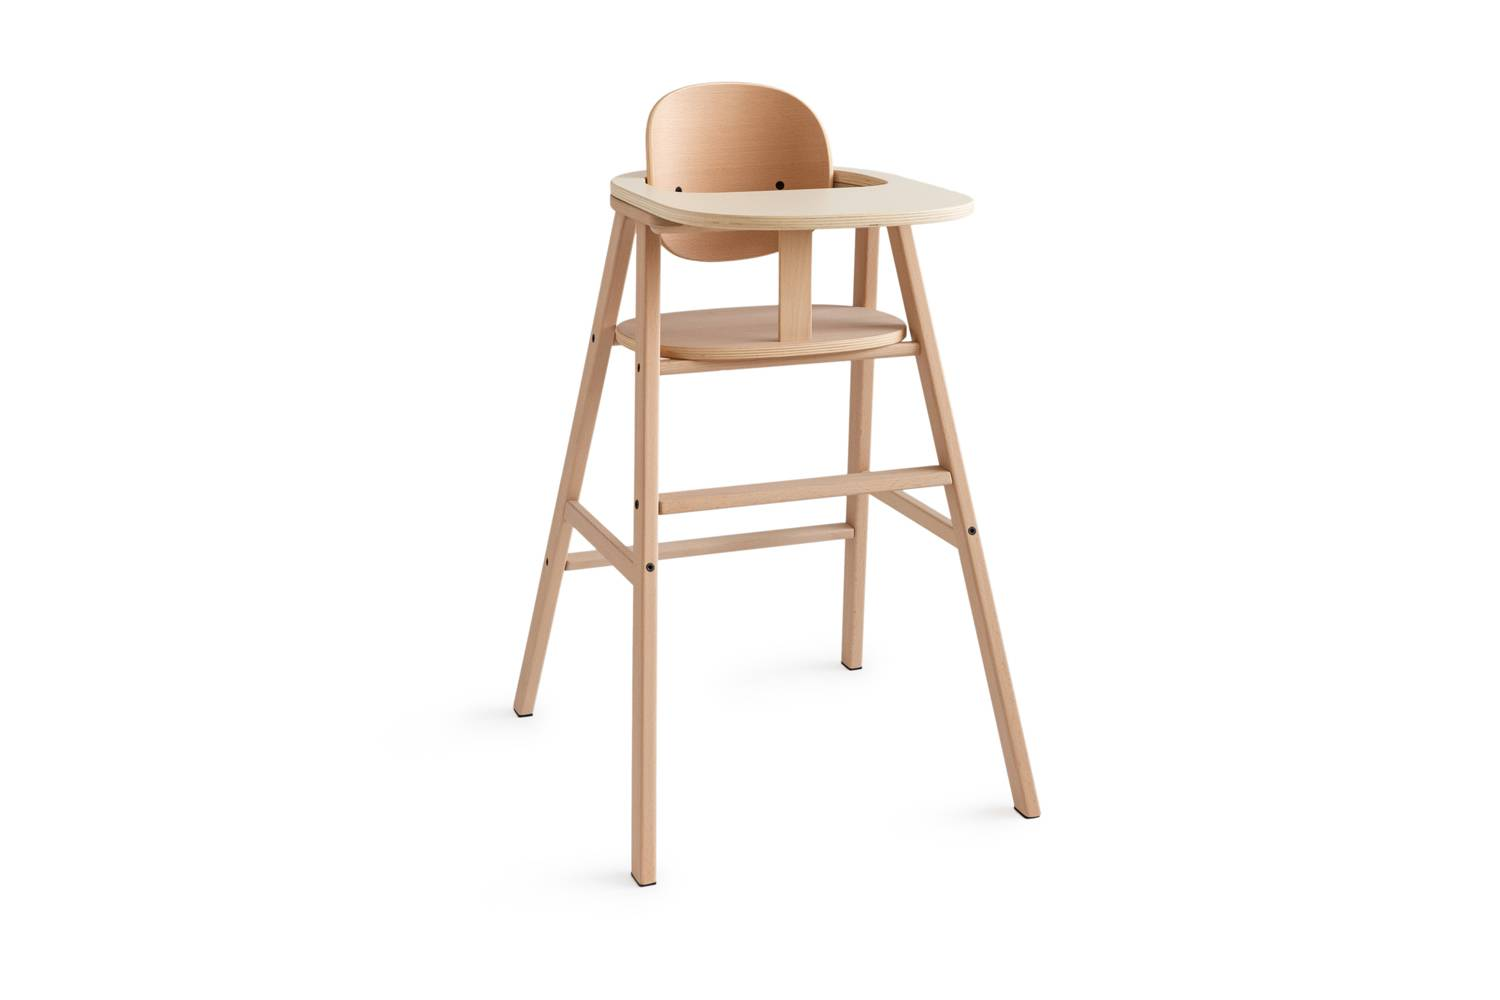 The Nobodinoz Growing Green Adjustable Solid Wood High Chair is $9 at Smallable. The Wooden Tray is an additional $59.